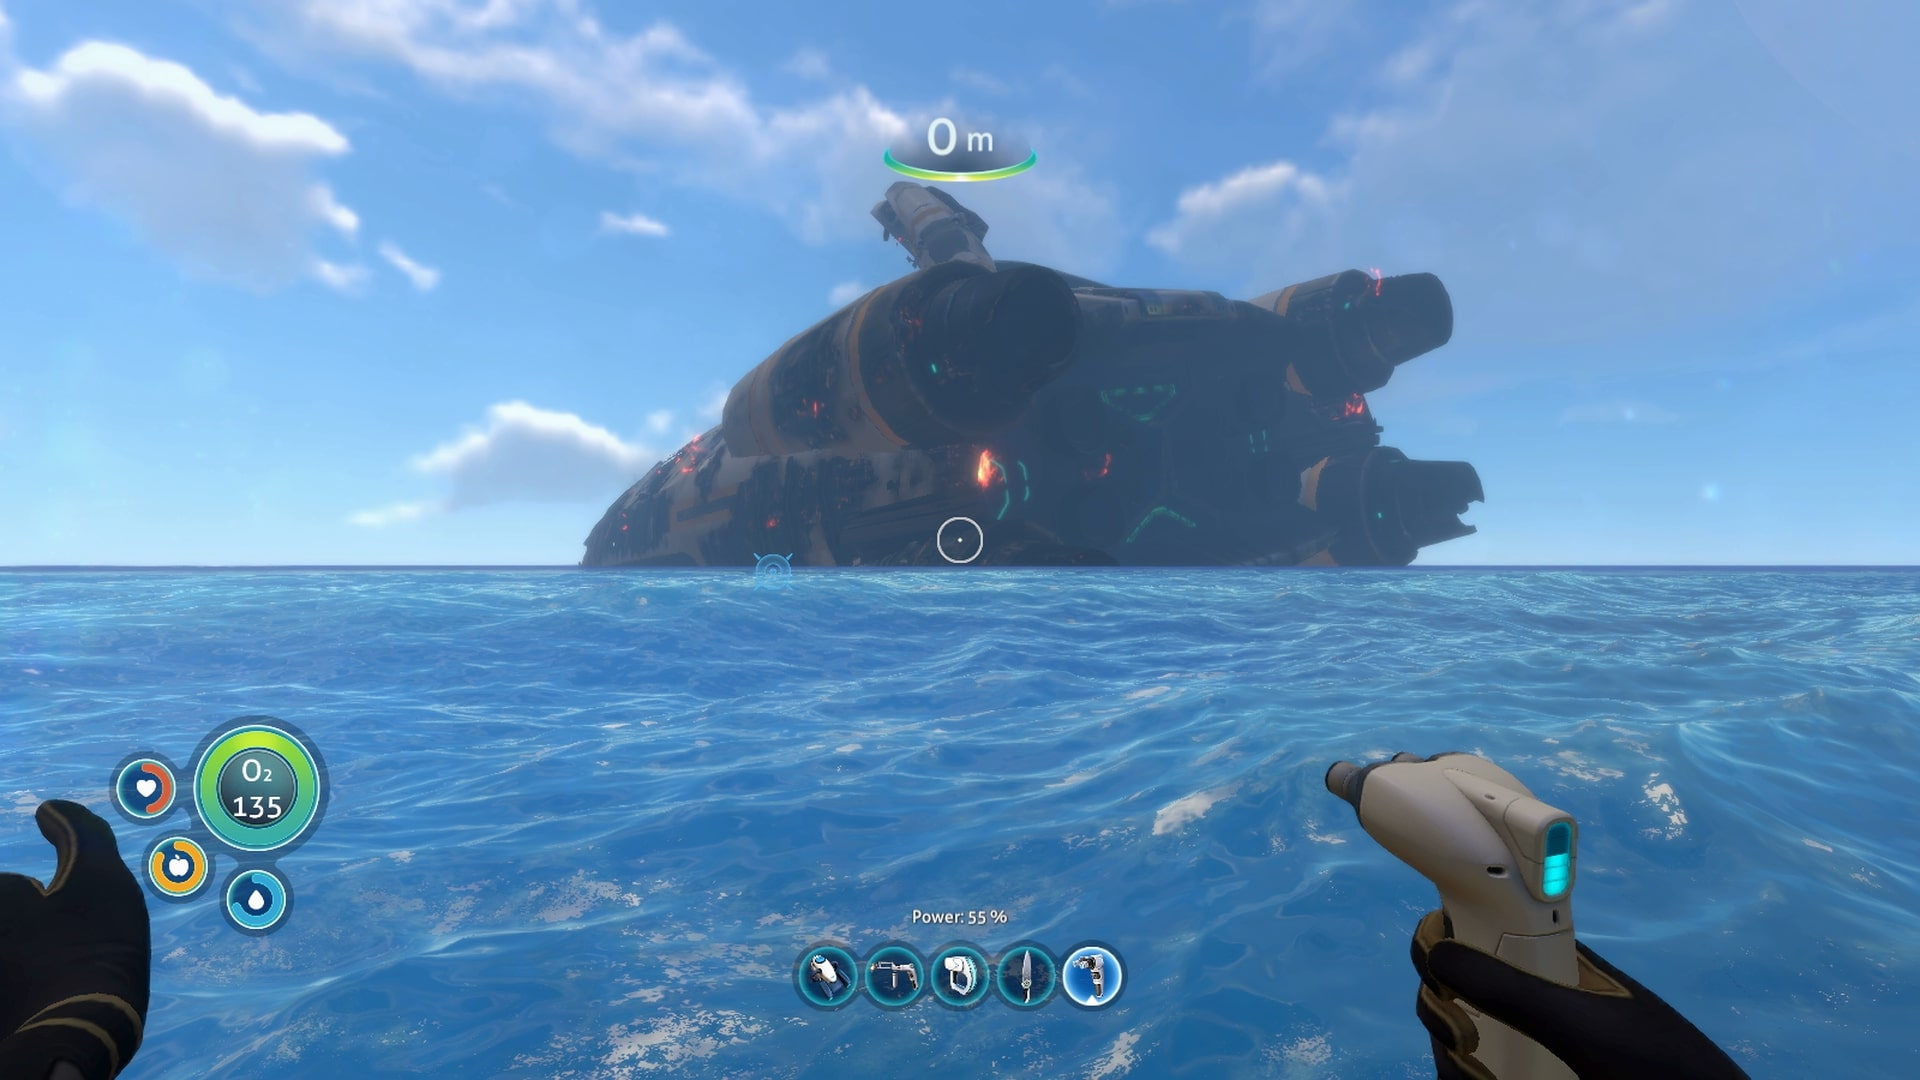 Subnautica Scanner Room Fragments 2020 : If you have a video card < 4gb in size, make sure you are playing on recommended settings.